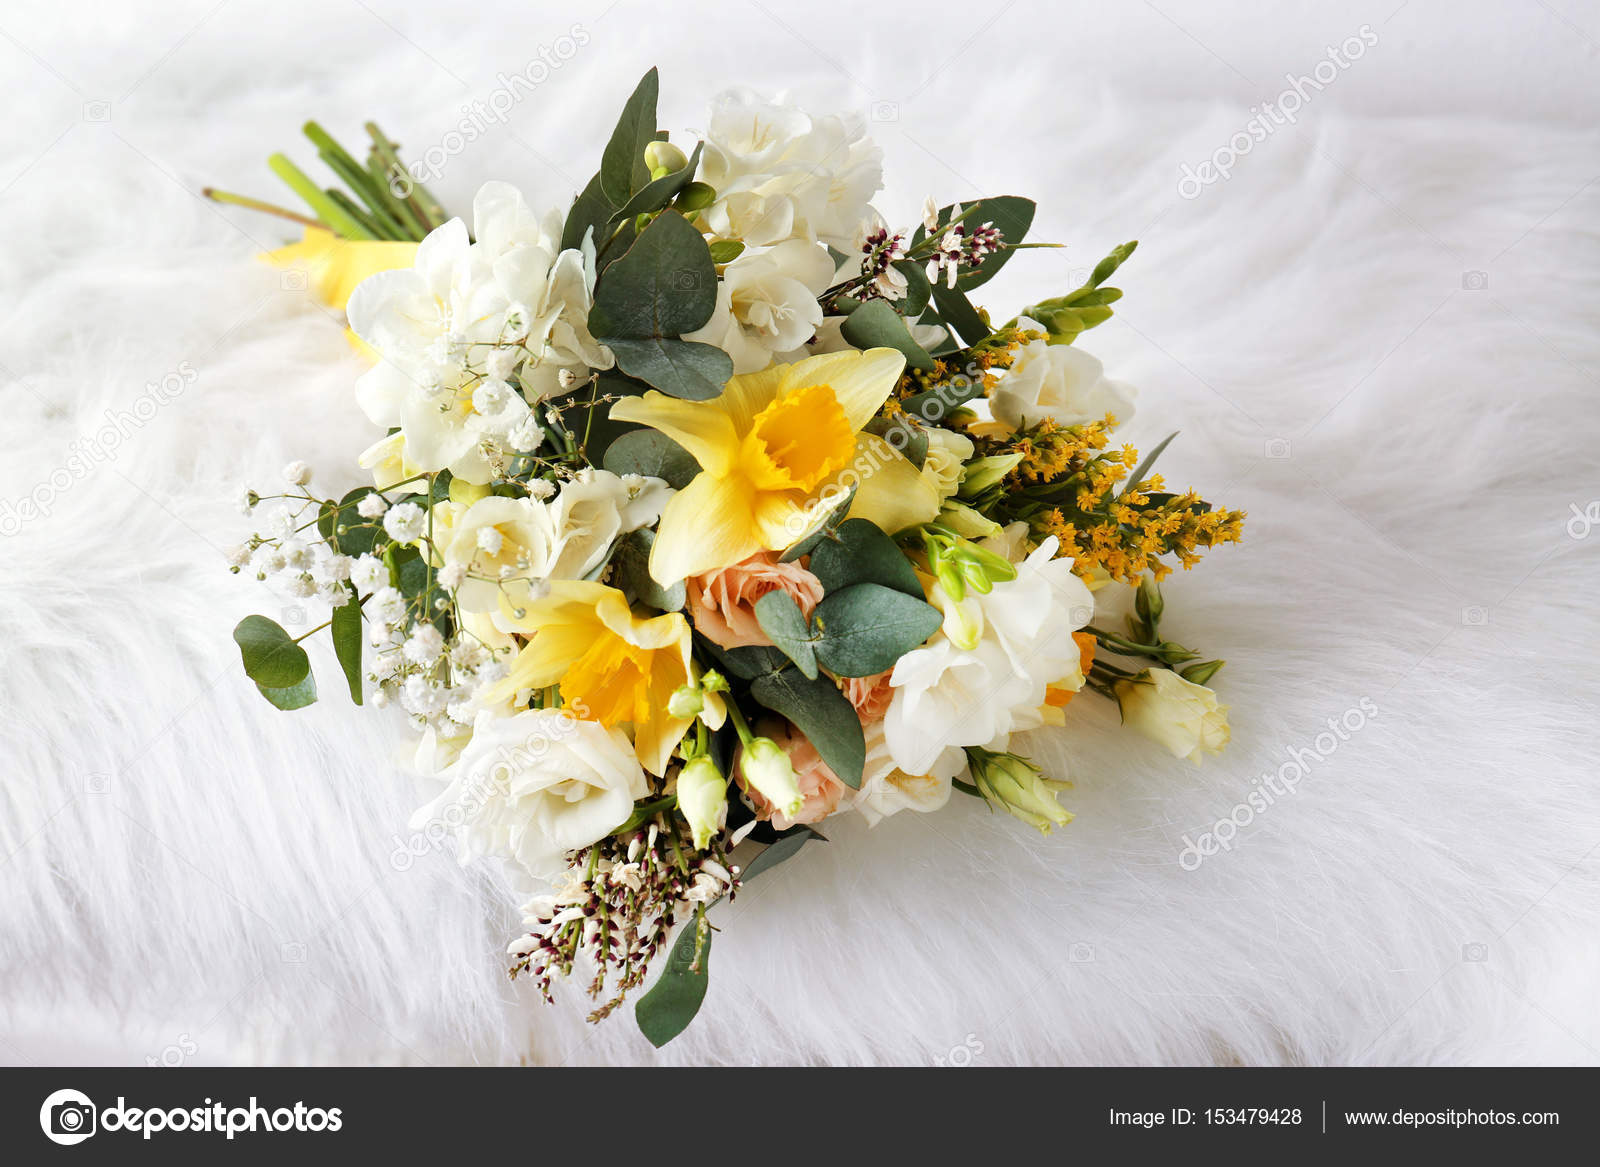 Beautiful bouquet with freesia flowers stock photo belchonock beautiful bouquet with freesia flowers on furry cloth photo by belchonock izmirmasajfo